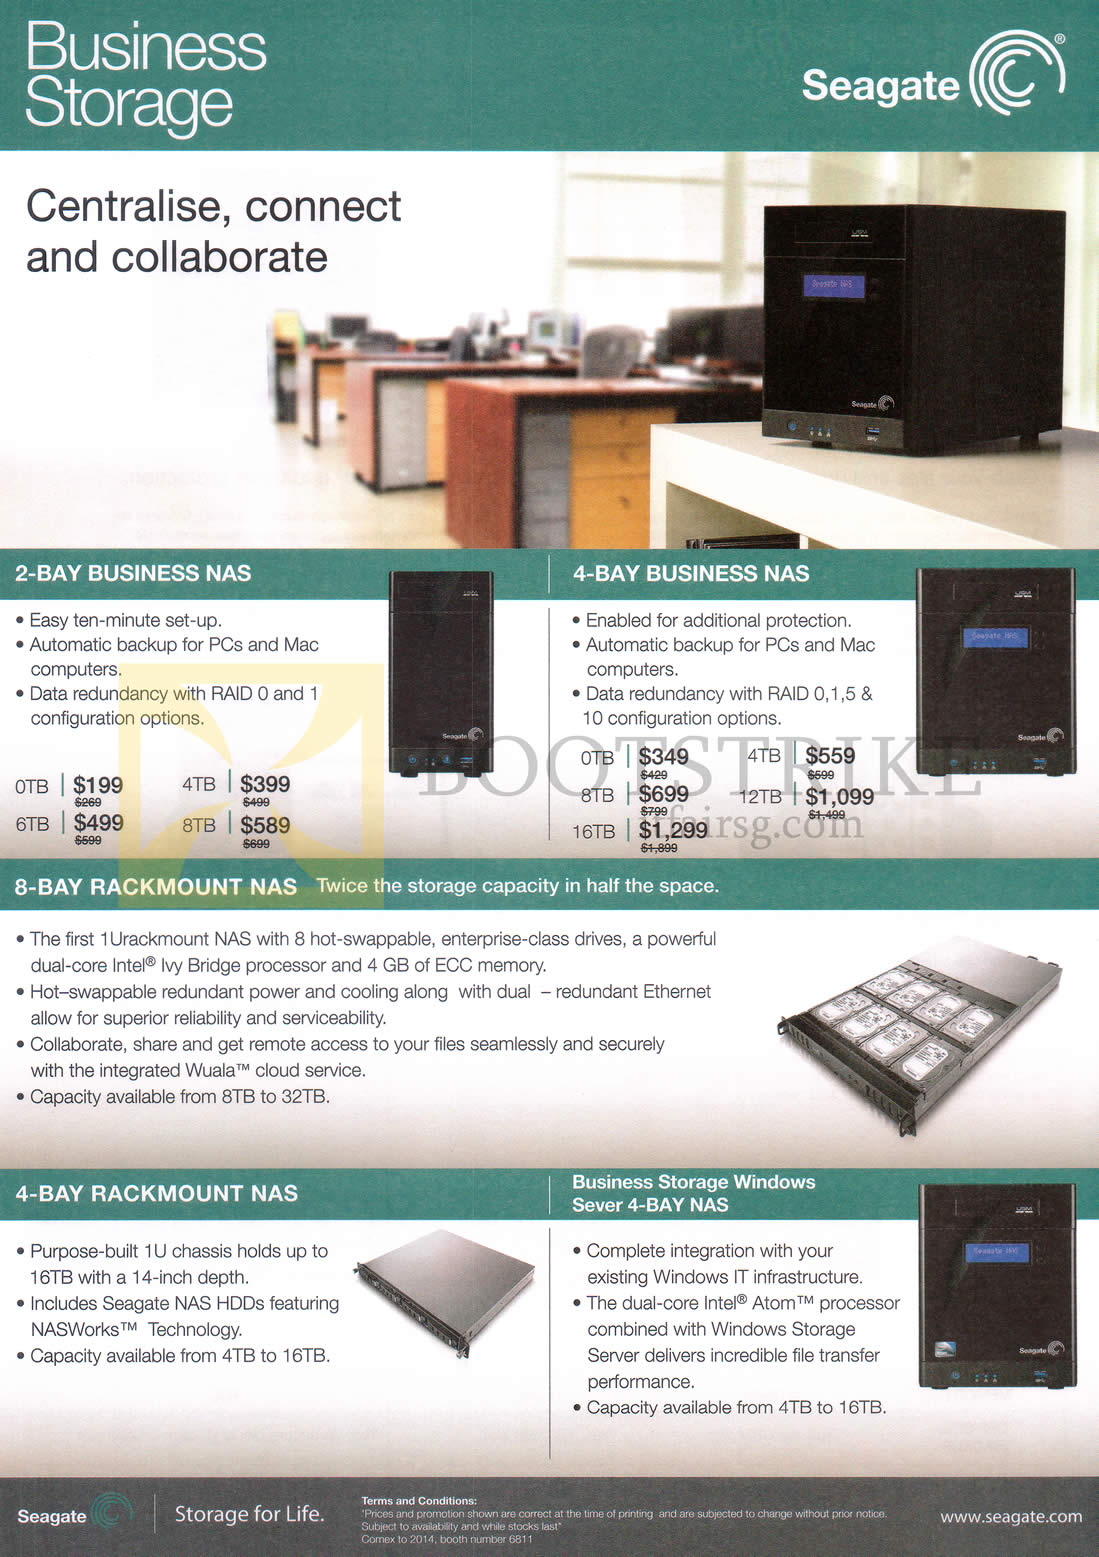 COMEX 2014 price list image brochure of Seagate Business Storage NAS 2 Bay, 4 Bay, 8 Bay Rockmount